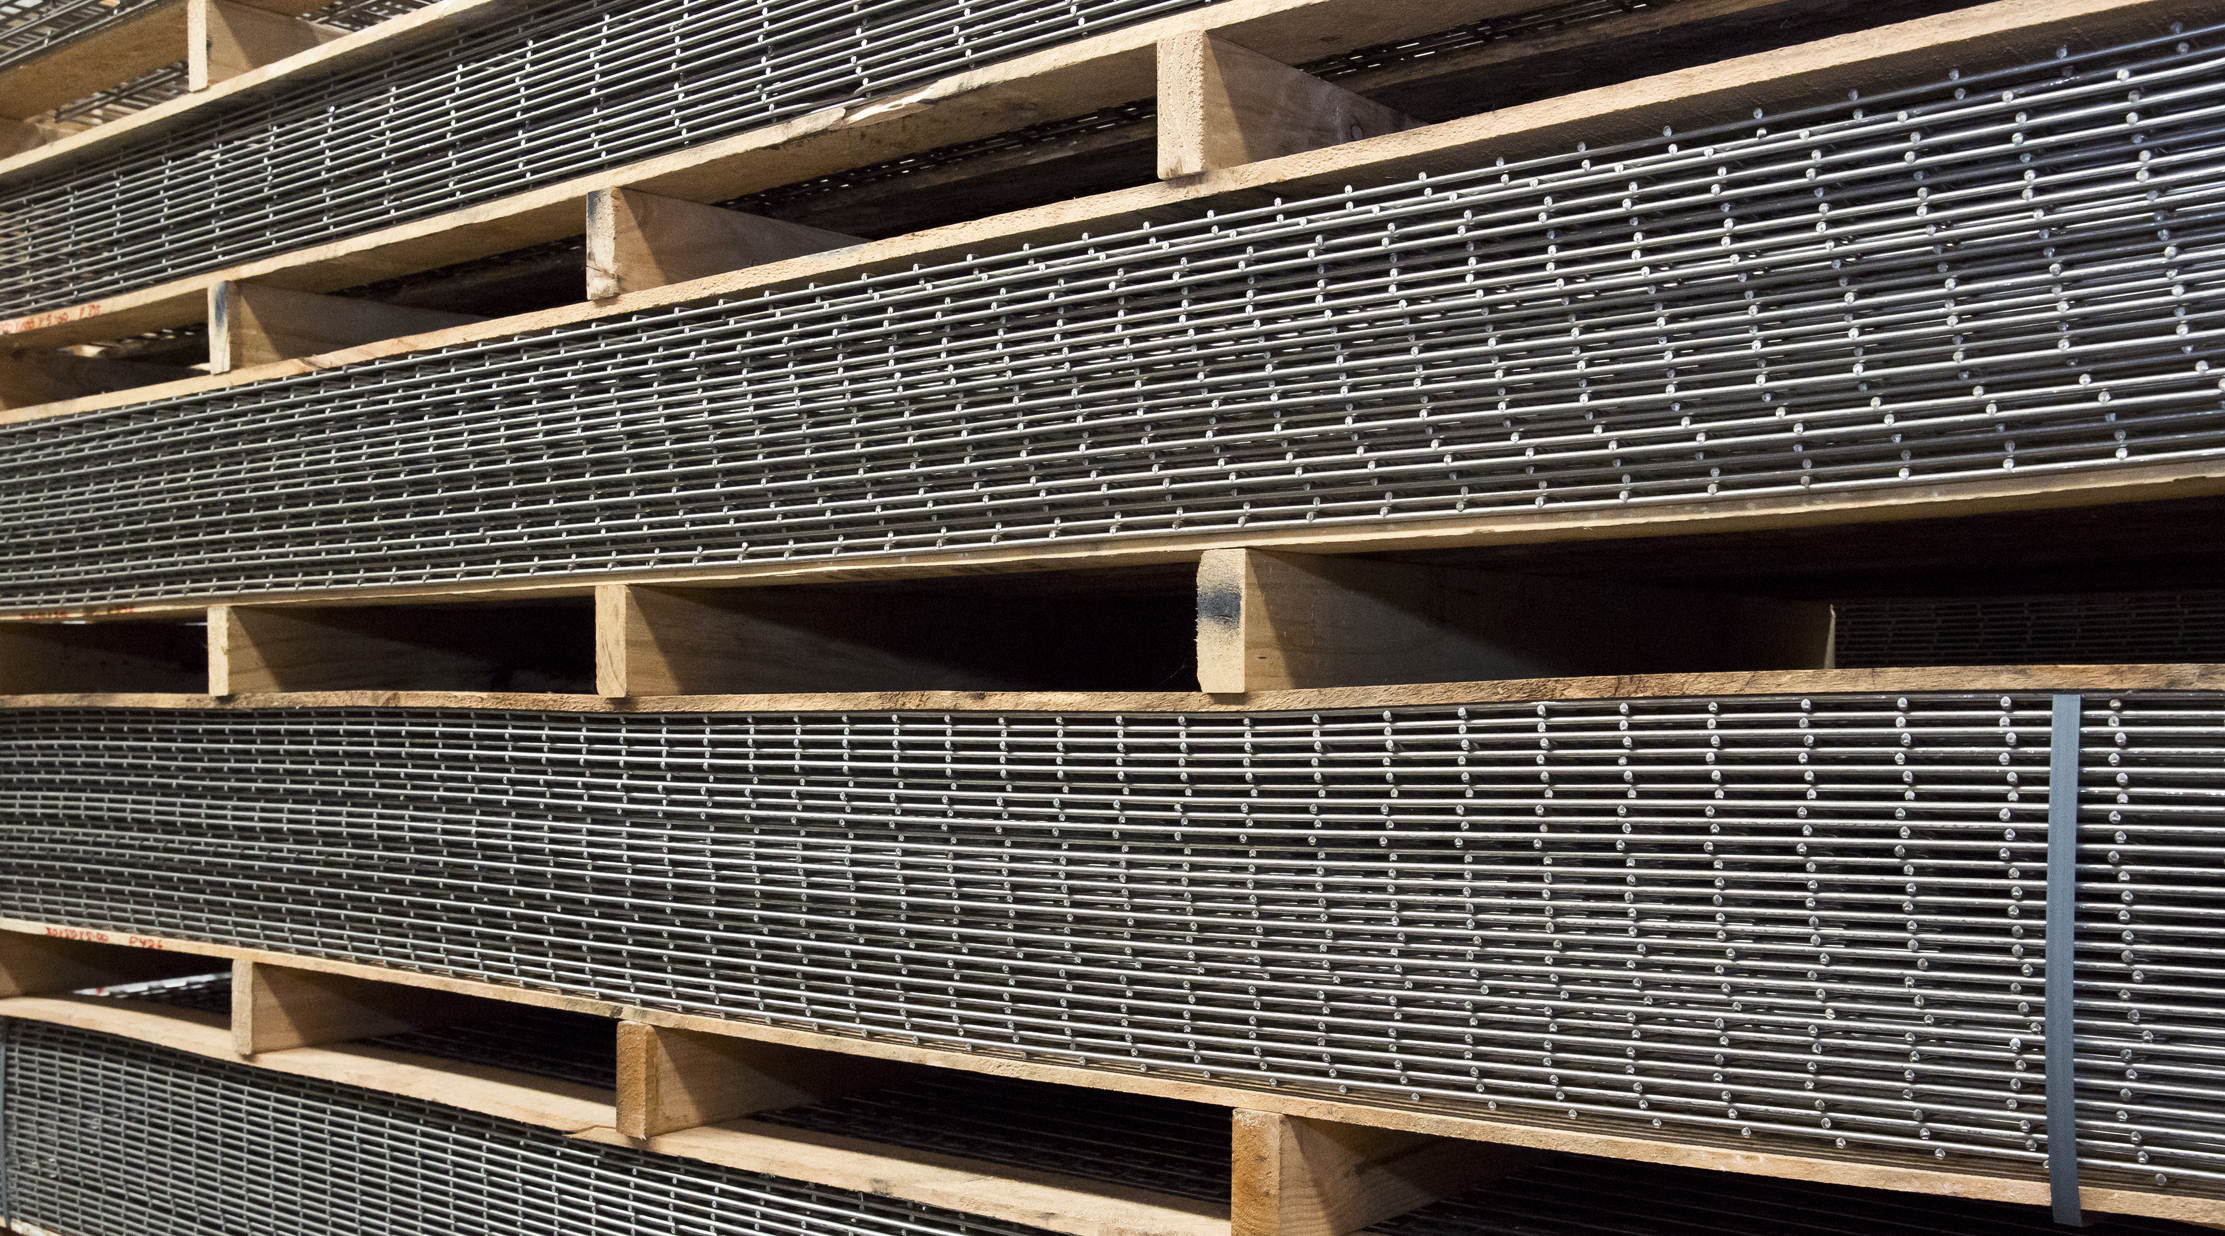 Stainless Steel Mesh Landscape | Stainless Steel Wire & Mesh